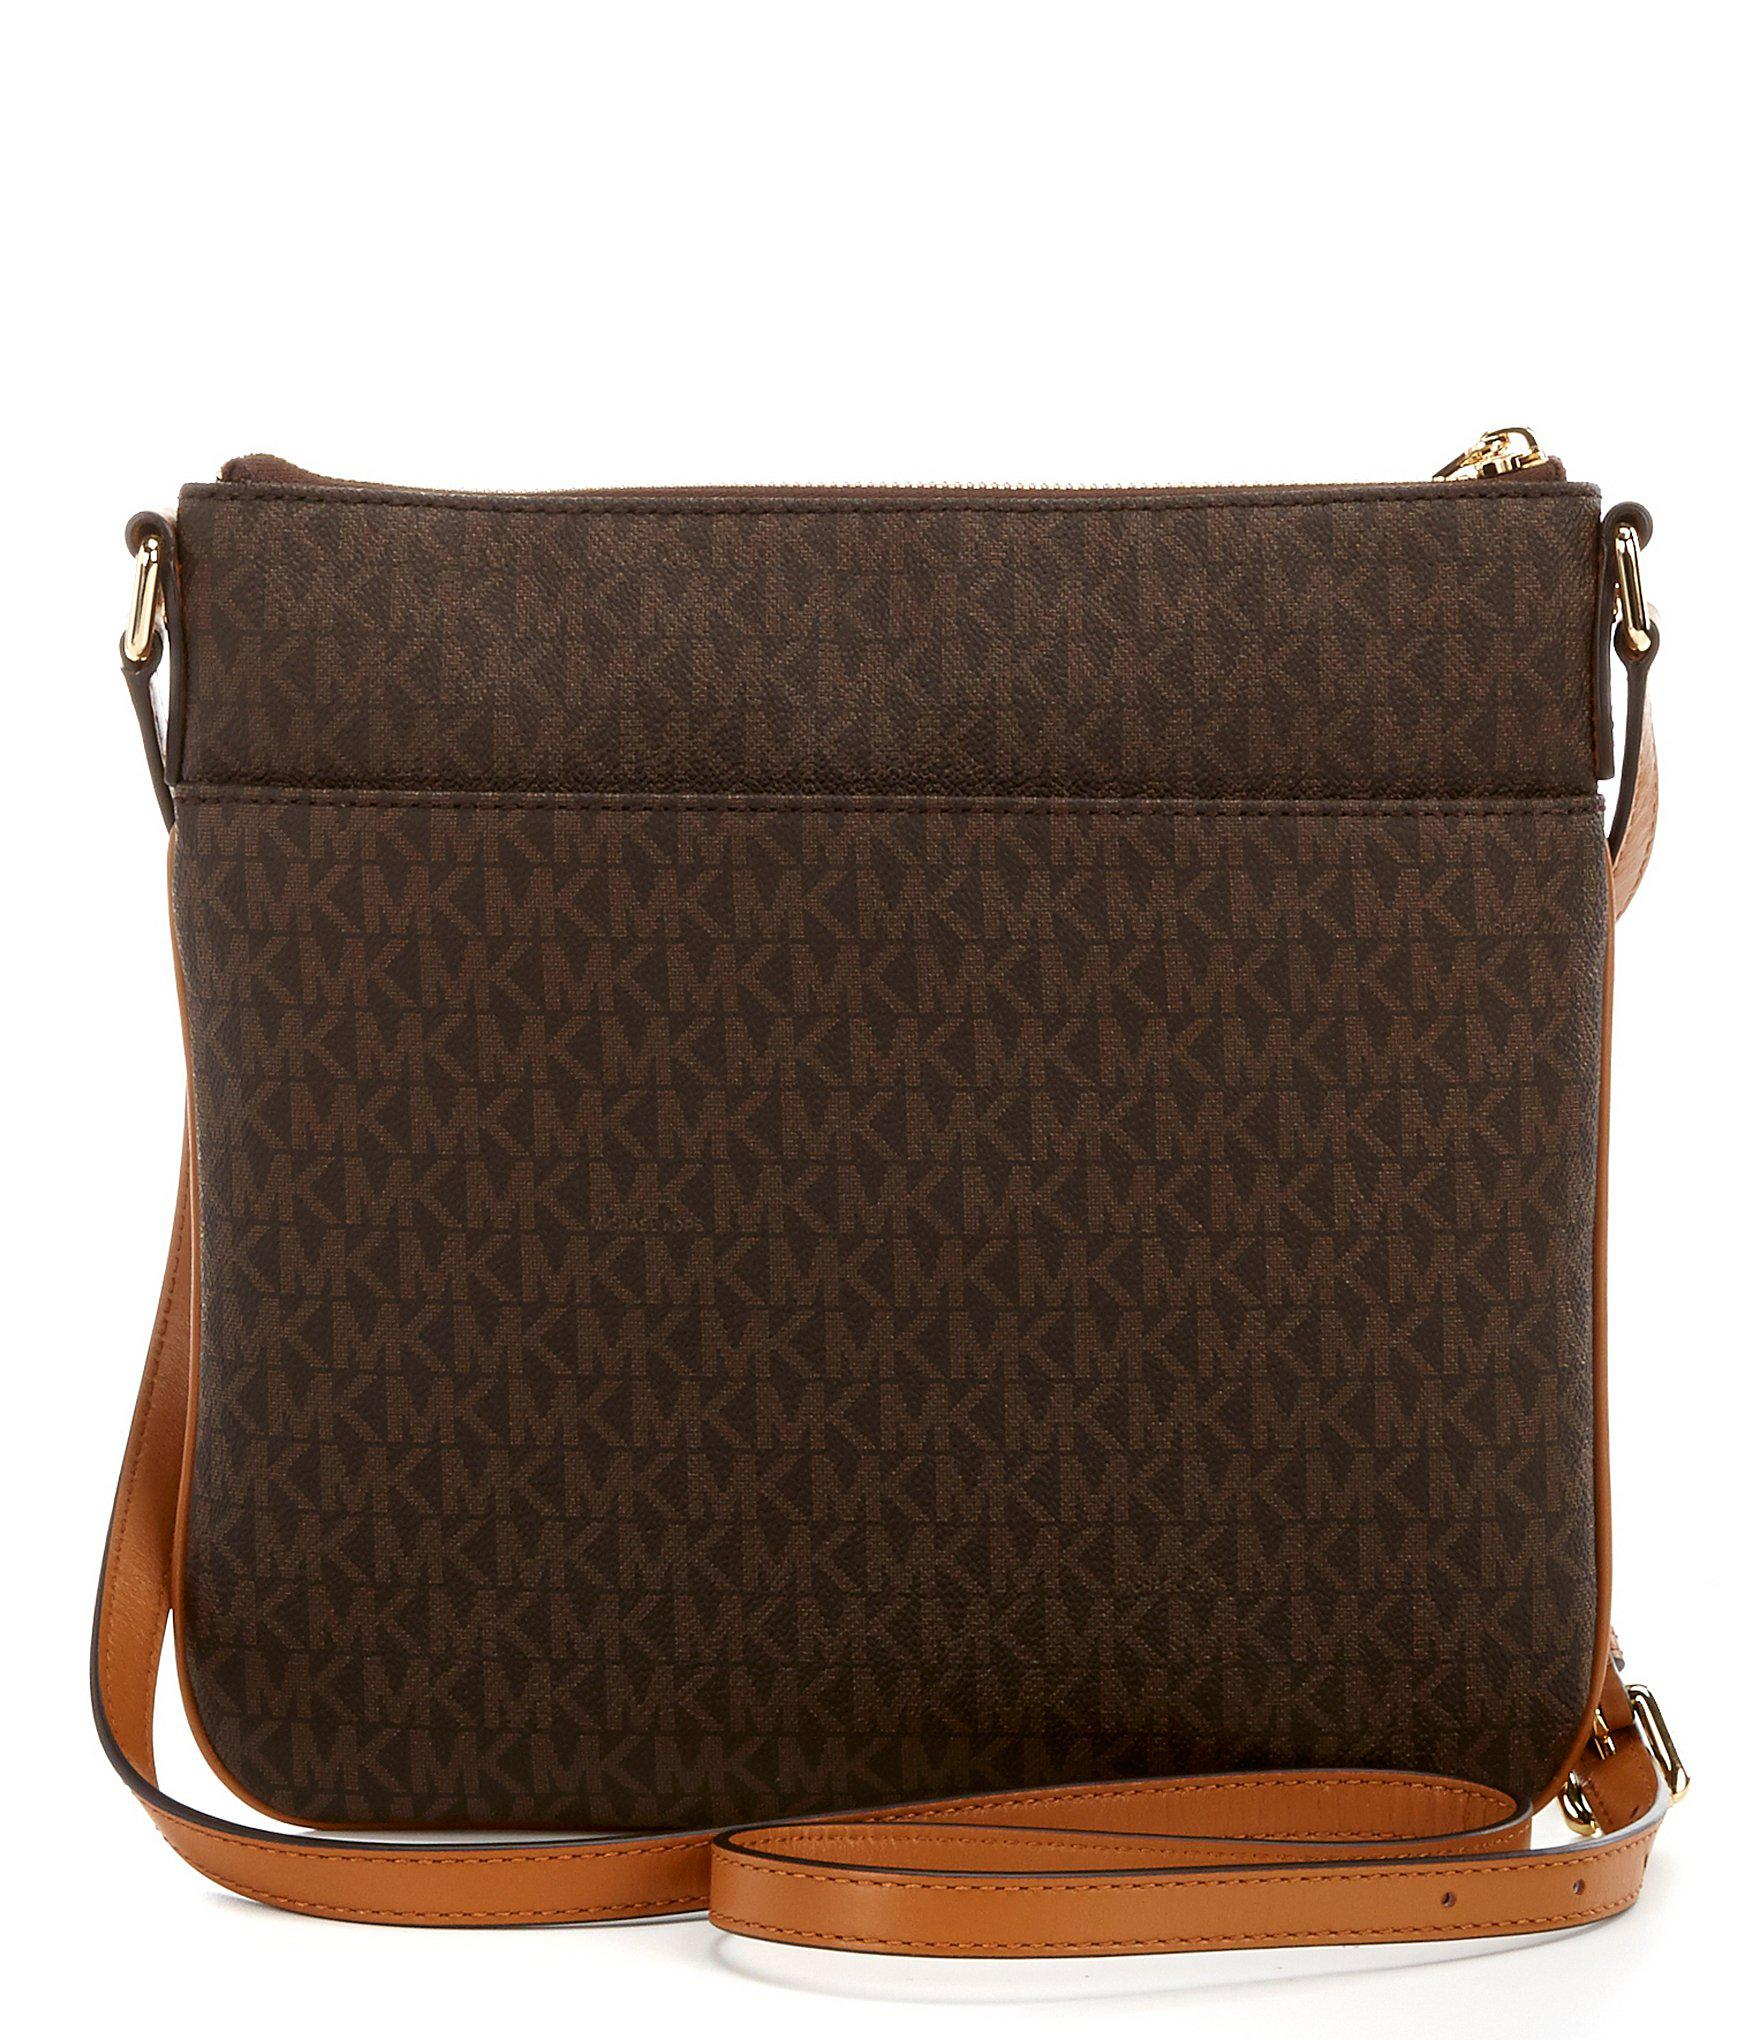 a12c05d3552c ... Best Of Fall Local Pro Collin County. Dillard S. Sakroots Den Teled  Small Convertible Cross Body Bag From. View Fullscreen. Lyst Michael Kors  Bedford ...